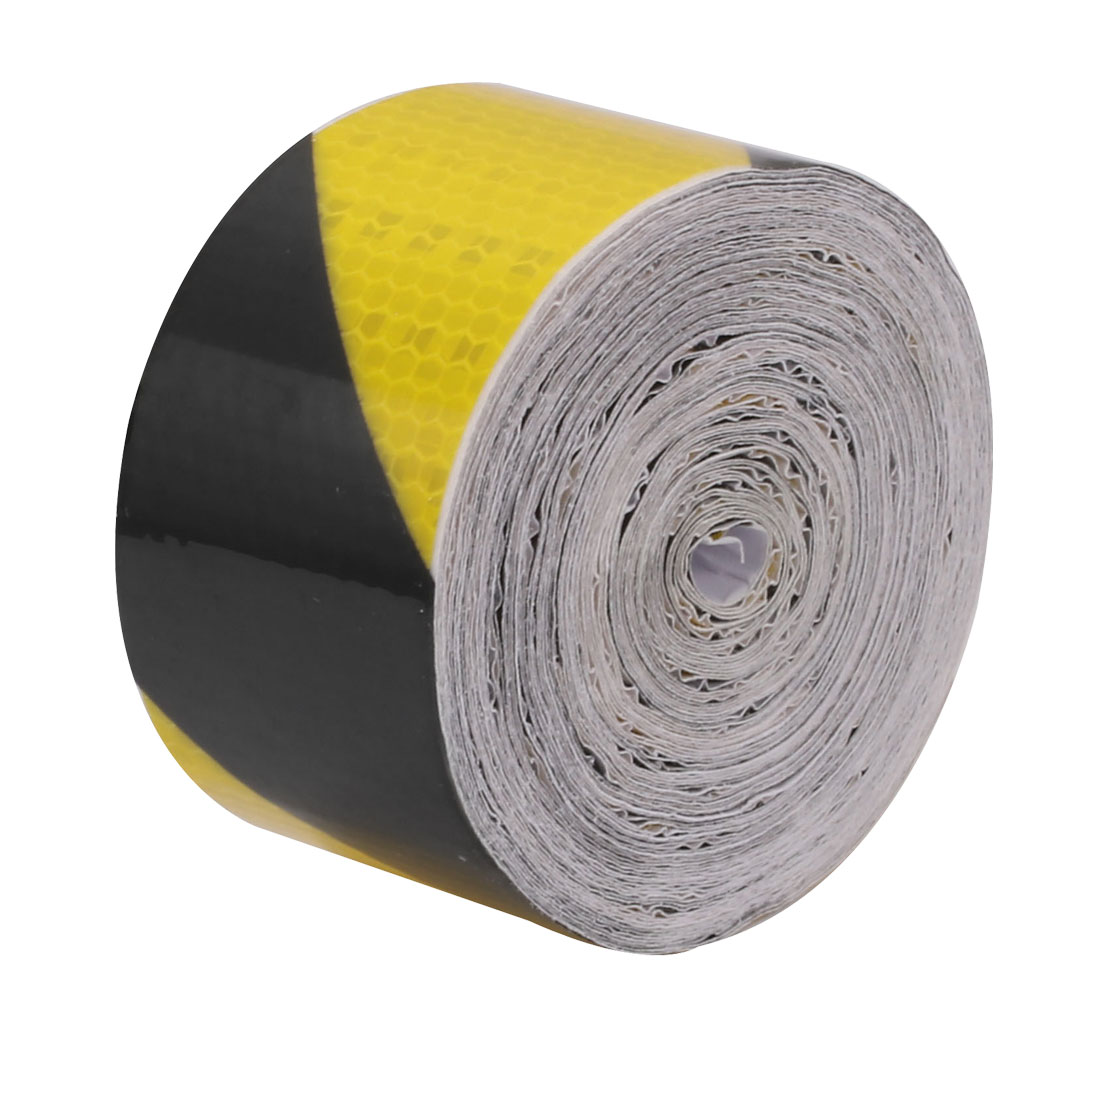 15M Length 5cm Width Single Sided Adhesive Reflective Warning Tape Yellow Black